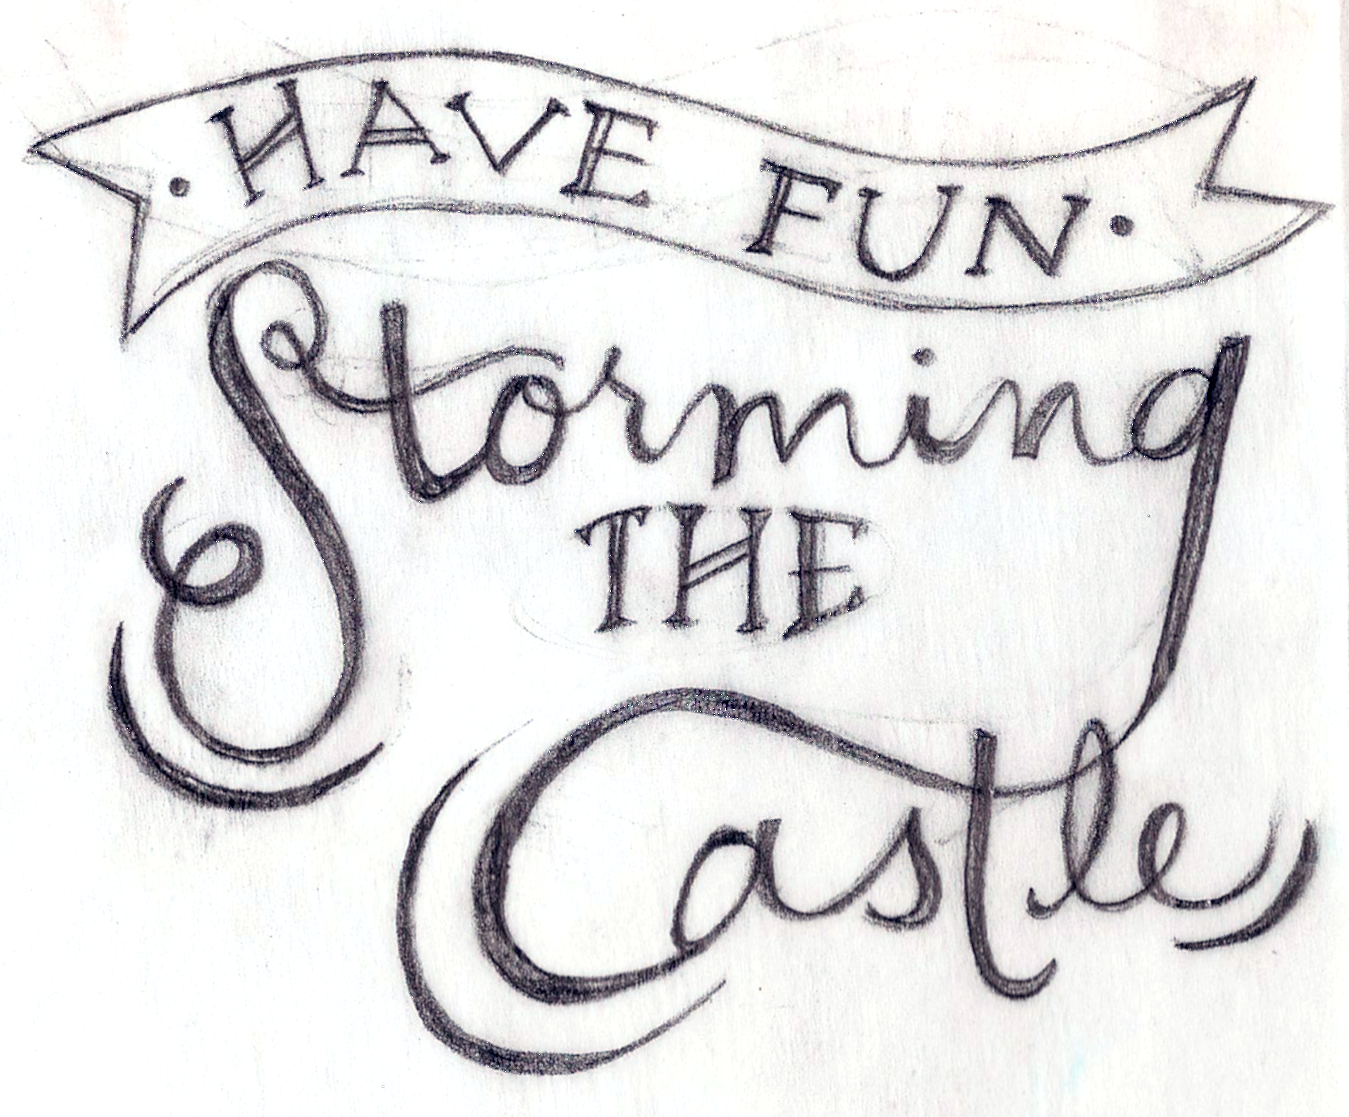 Have fun storming the castle - w/FINAL art! Feedback welcome!! - image 6 - student project